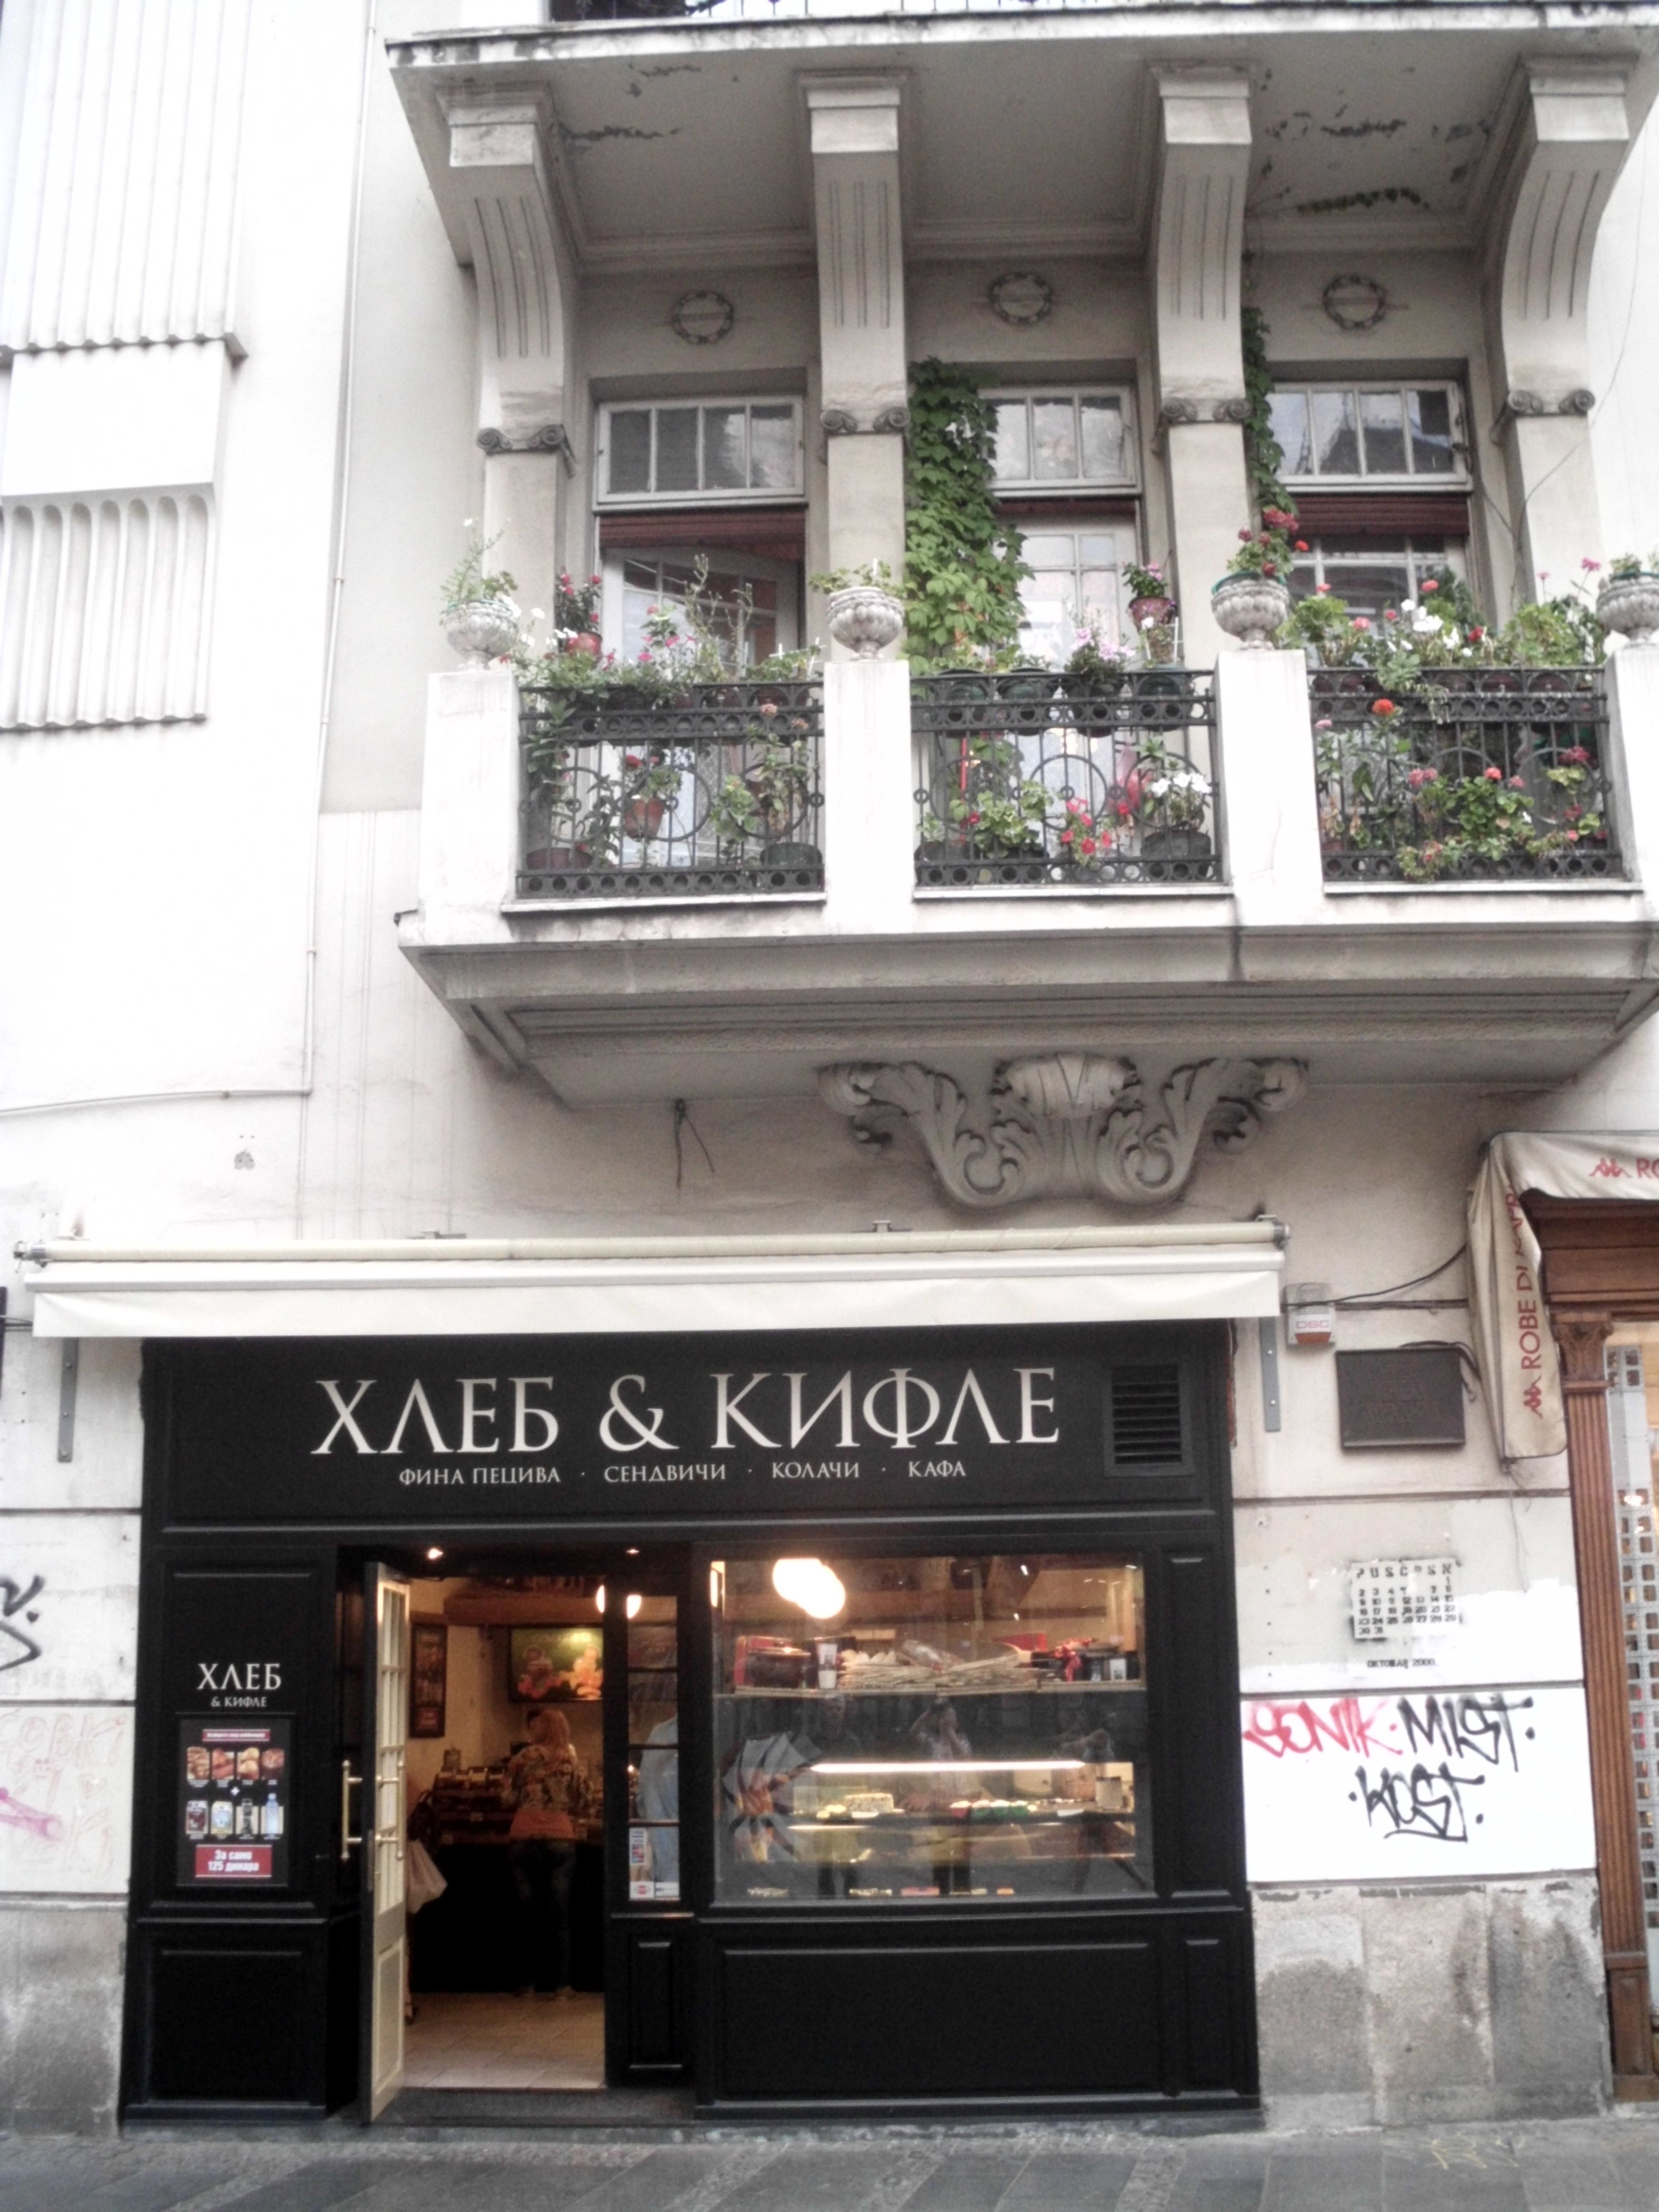 Bread And Pastries Bakery Belgrade Serbia And This Balcony Is One Of The Most Beautiful Ones In Belgrade Knez Mihajilo Belgrade Serbia Belgrade Serbia